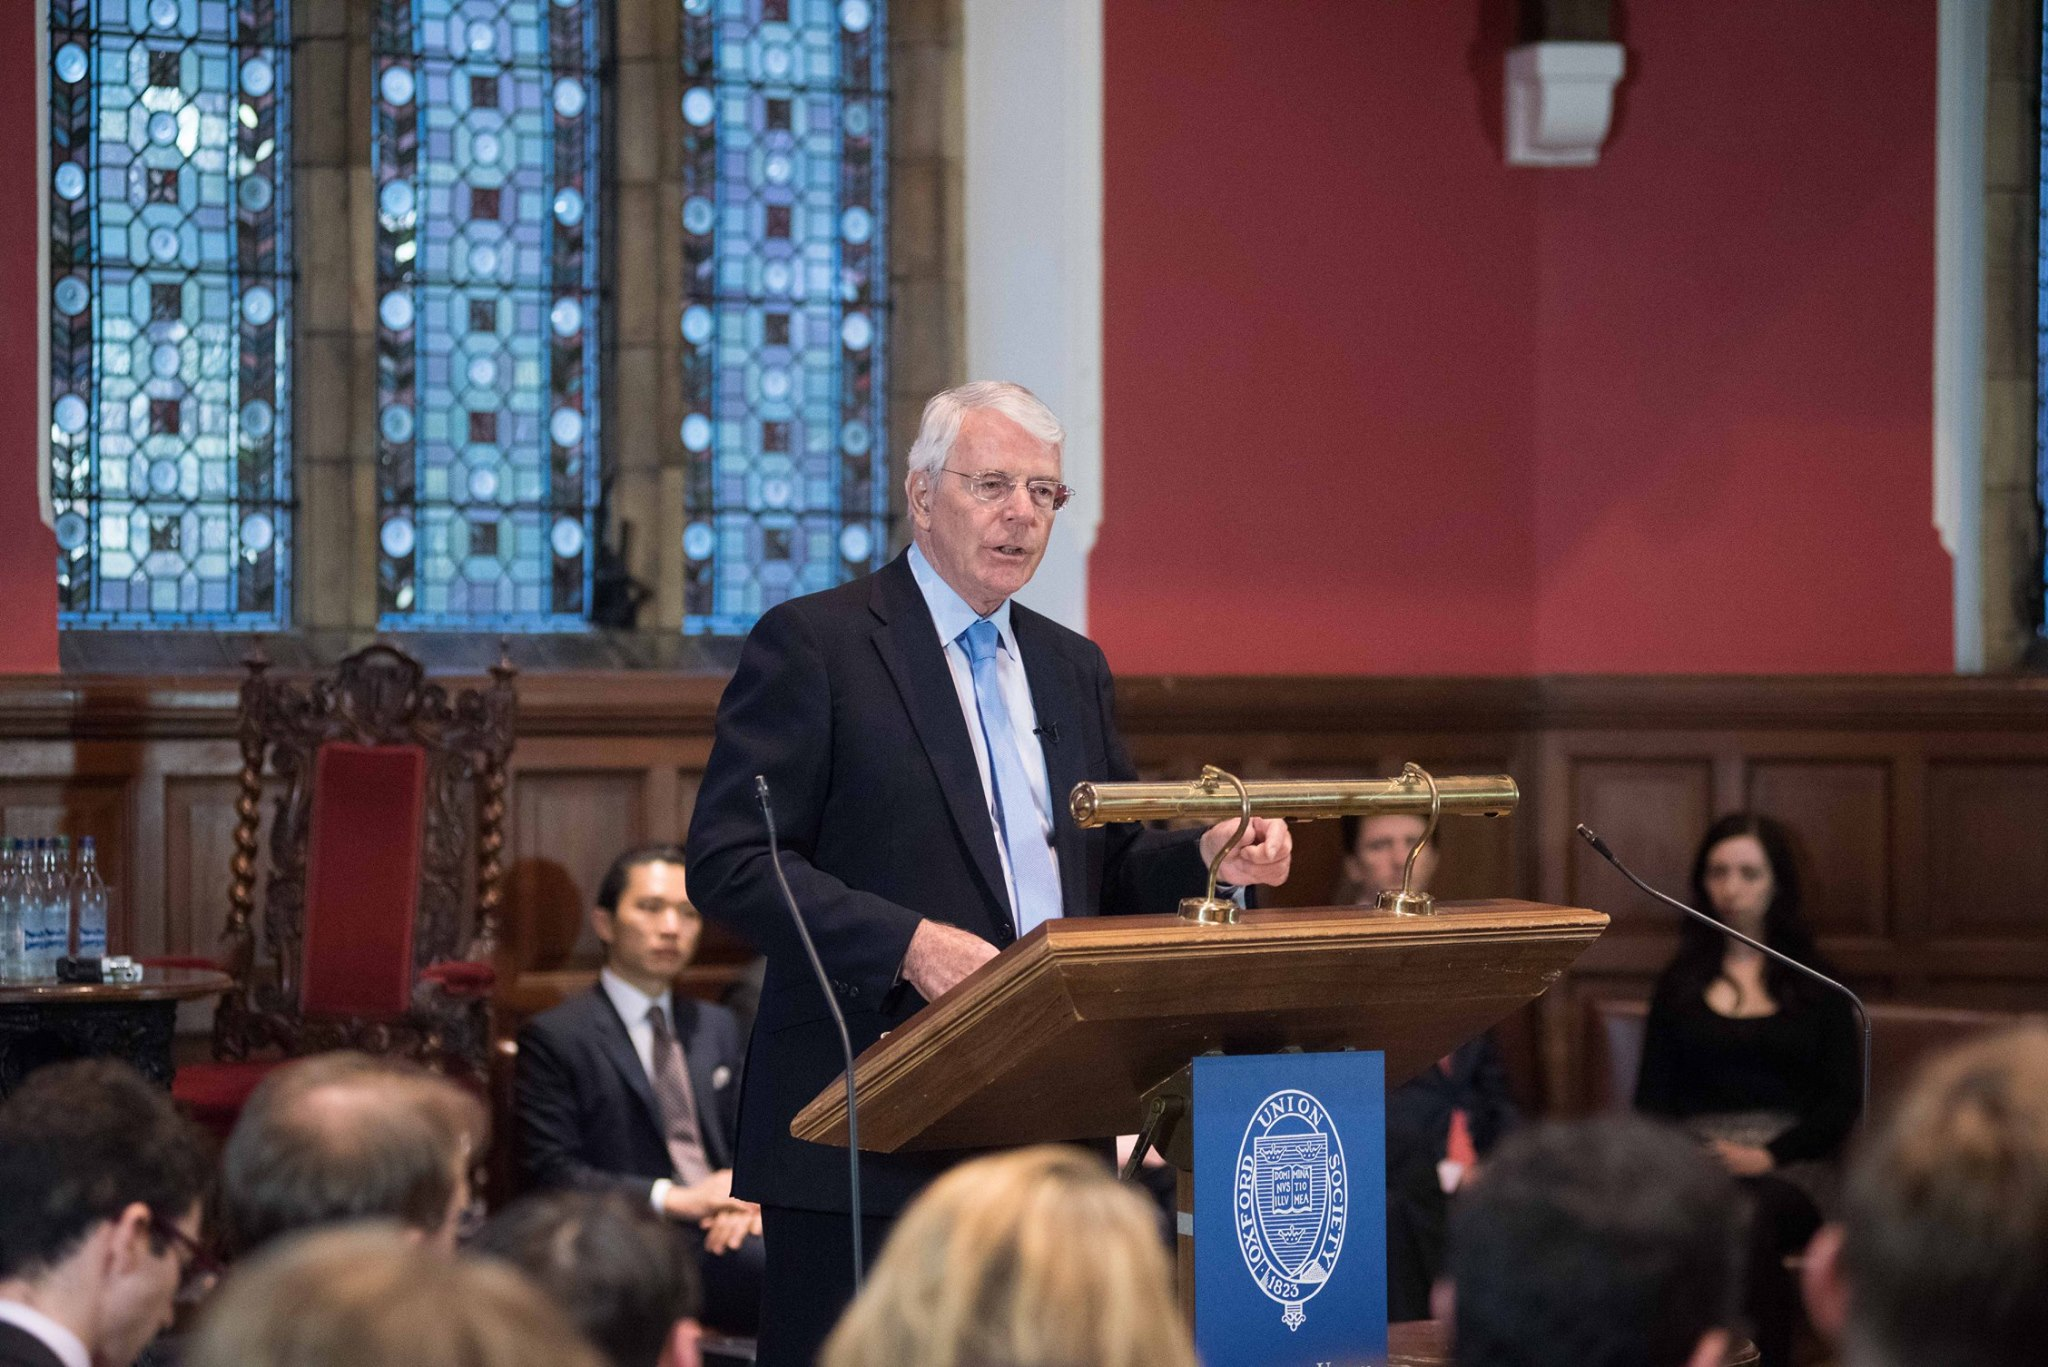 John Major hits out at 'divisive' Brexit arguments at the Oxford Union